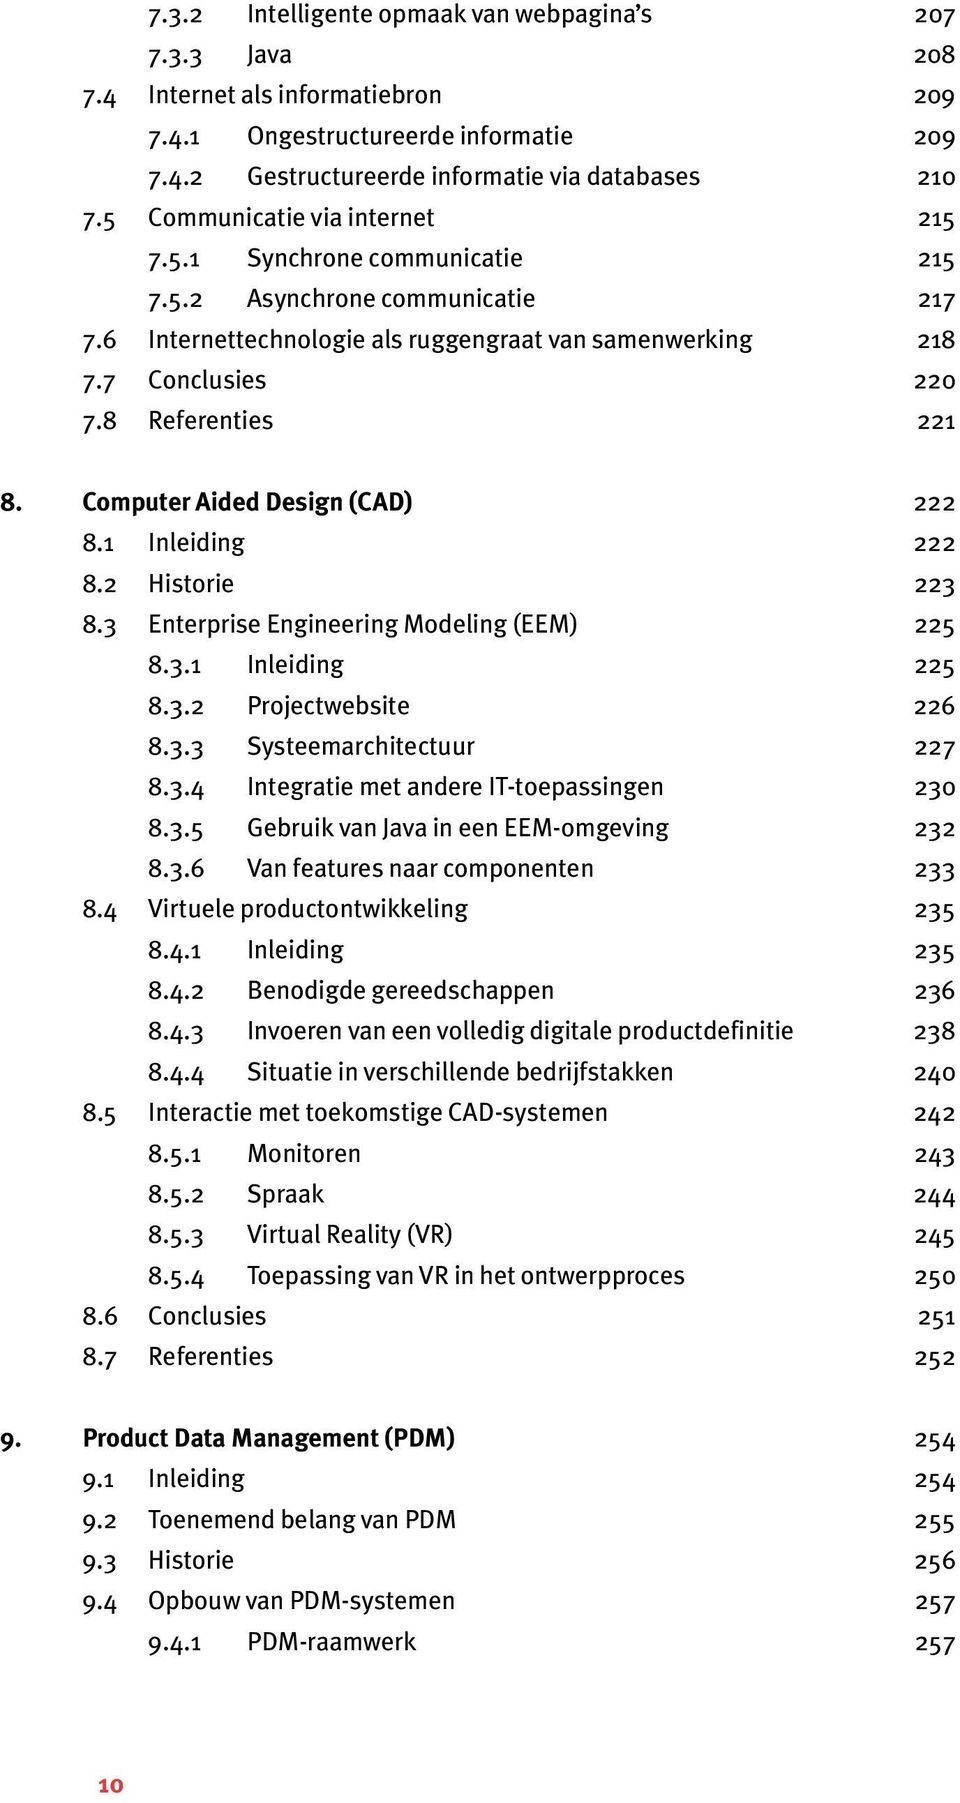 8 Referenties 221 8. Computer Aided Design (CAD) 222 8.1 Inleiding 222 8.2 Historie 223 8.3 Enterprise Engineering Modeling (EEM) 225 8.3.1 Inleiding 225 8.3.2 Projectwebsite 226 8.3.3 Systeemarchitectuur 227 8.